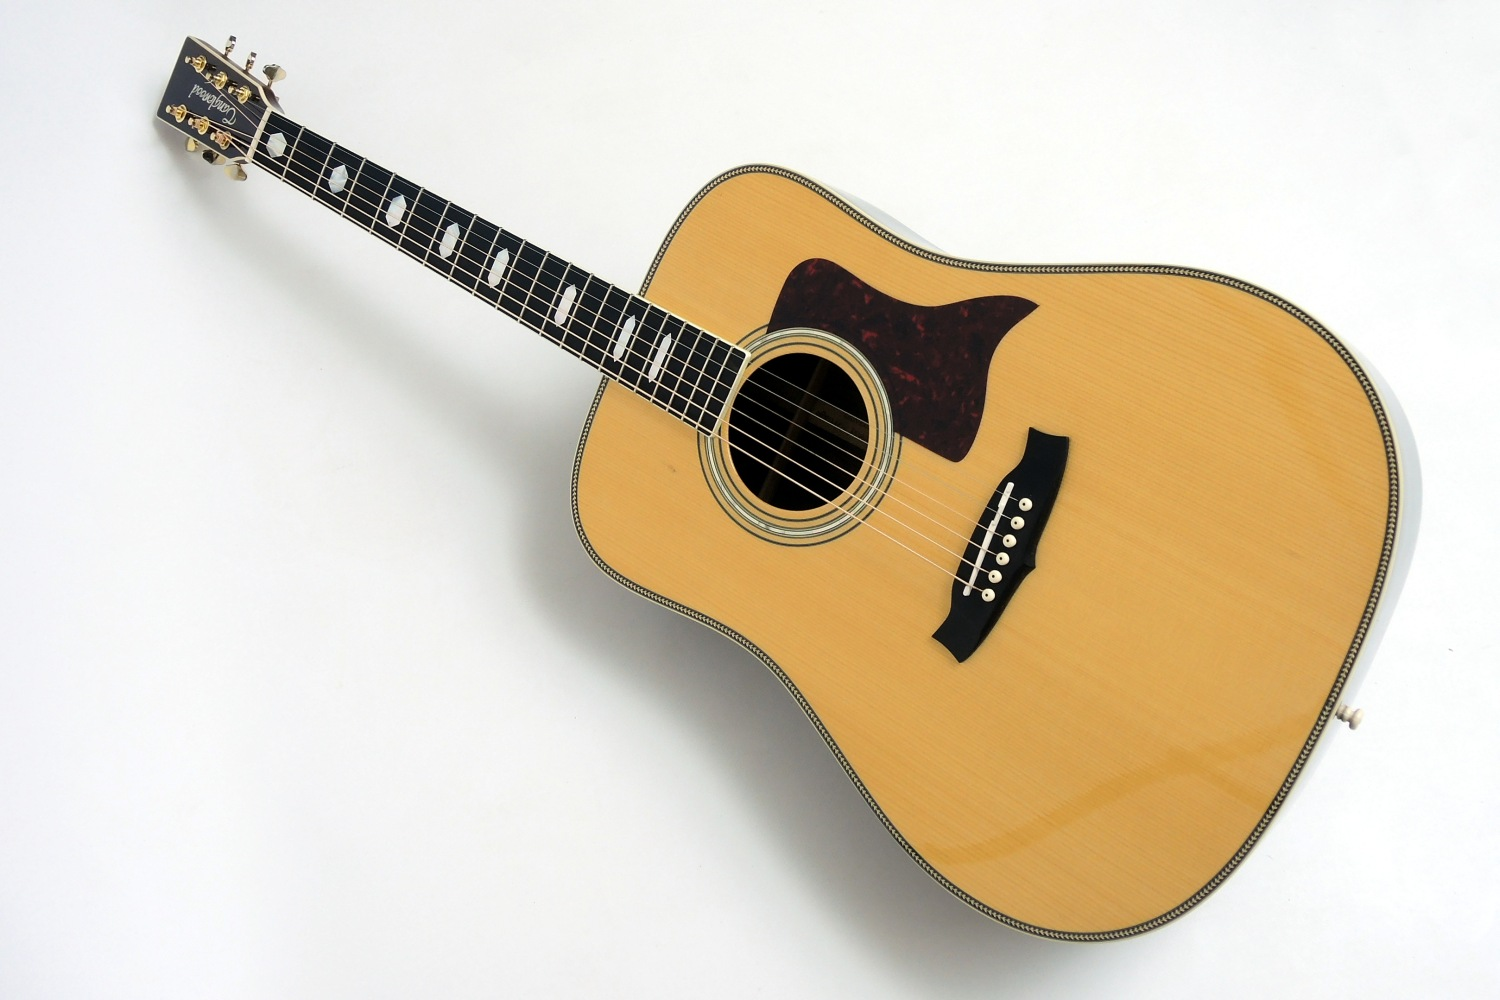 Tanglewood Dreadnought TW 1000